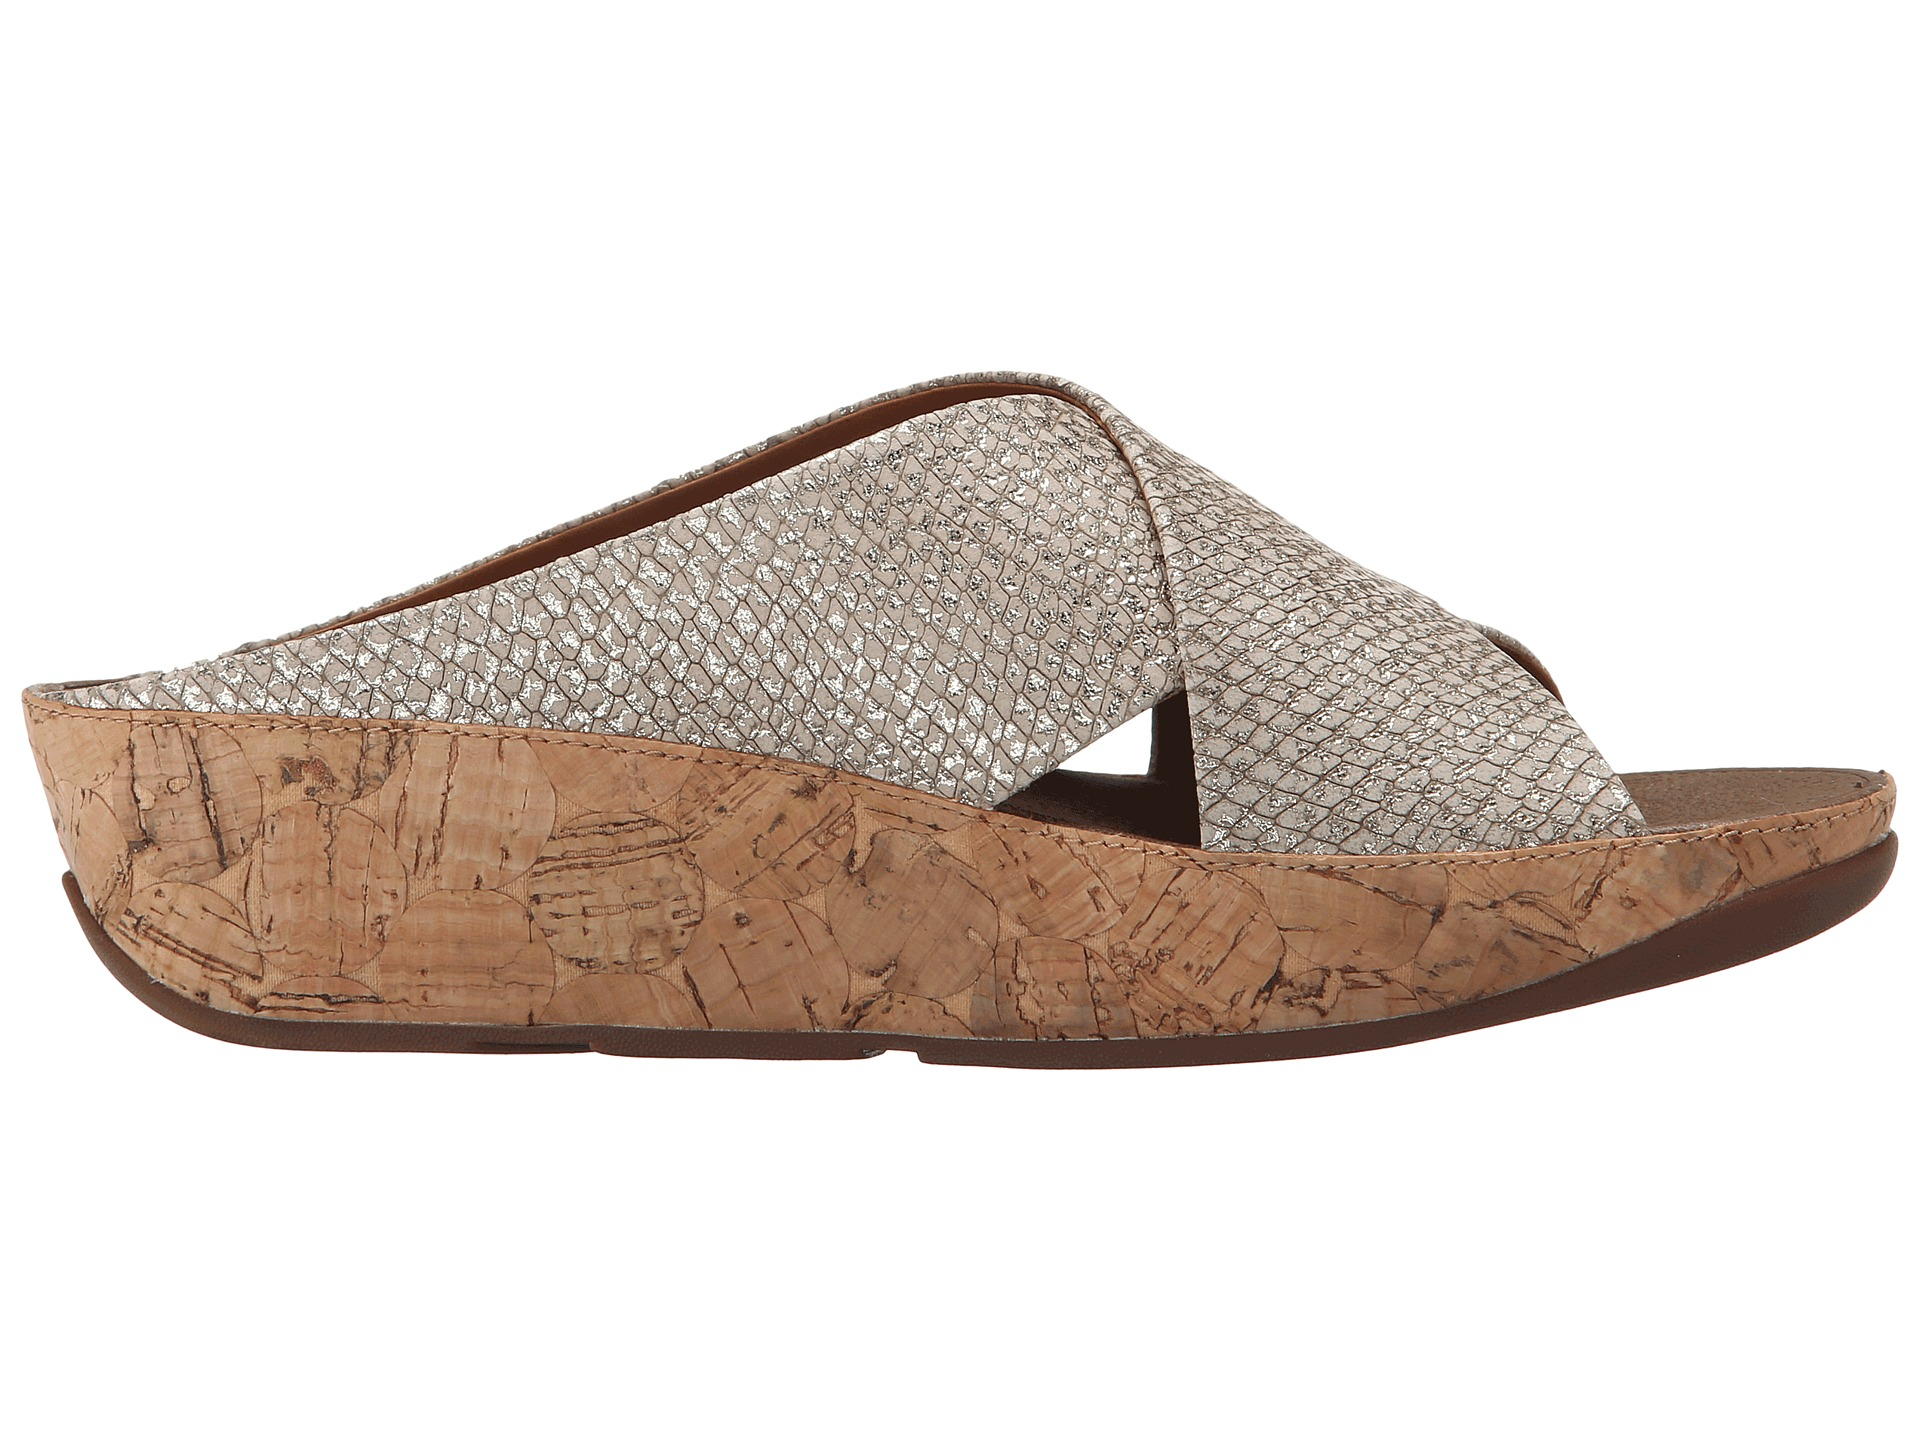 0c5ccc130877 Lyst - Fitflop Kys in Metallic